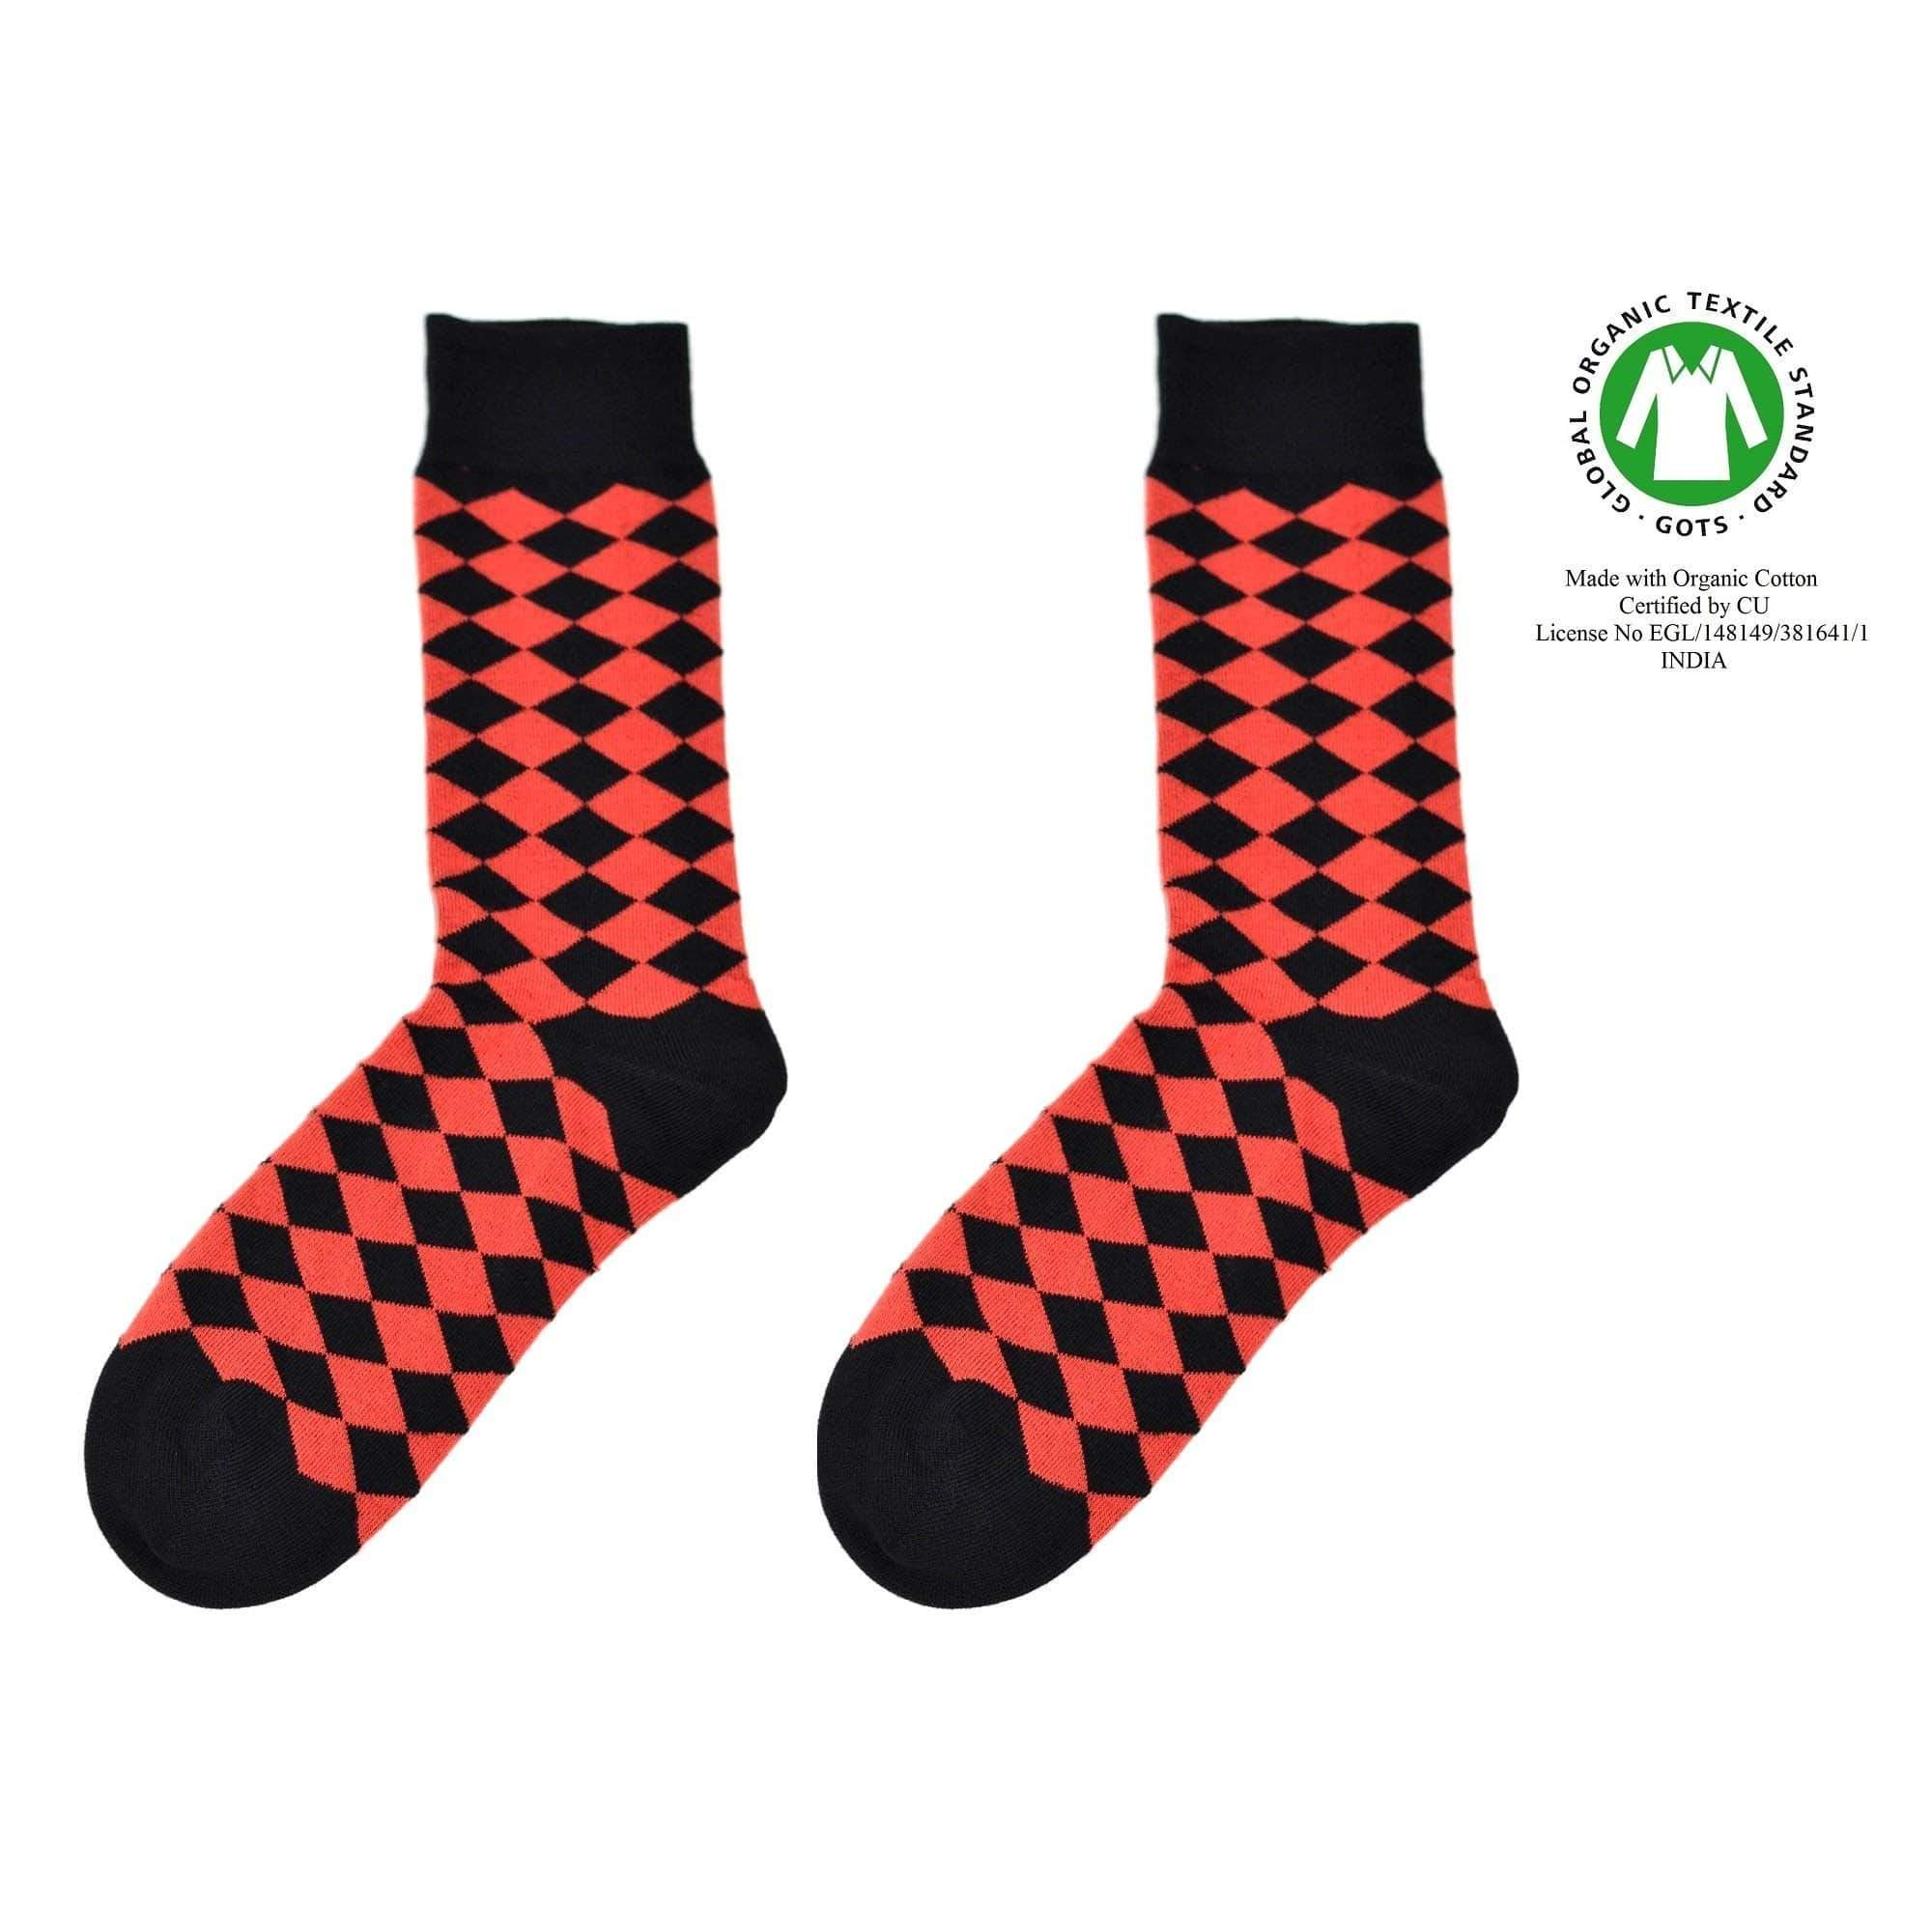 Organic Socks of Sweden sock Bergman Socks. Organic Cotton. sustainable fashion ethical fashion